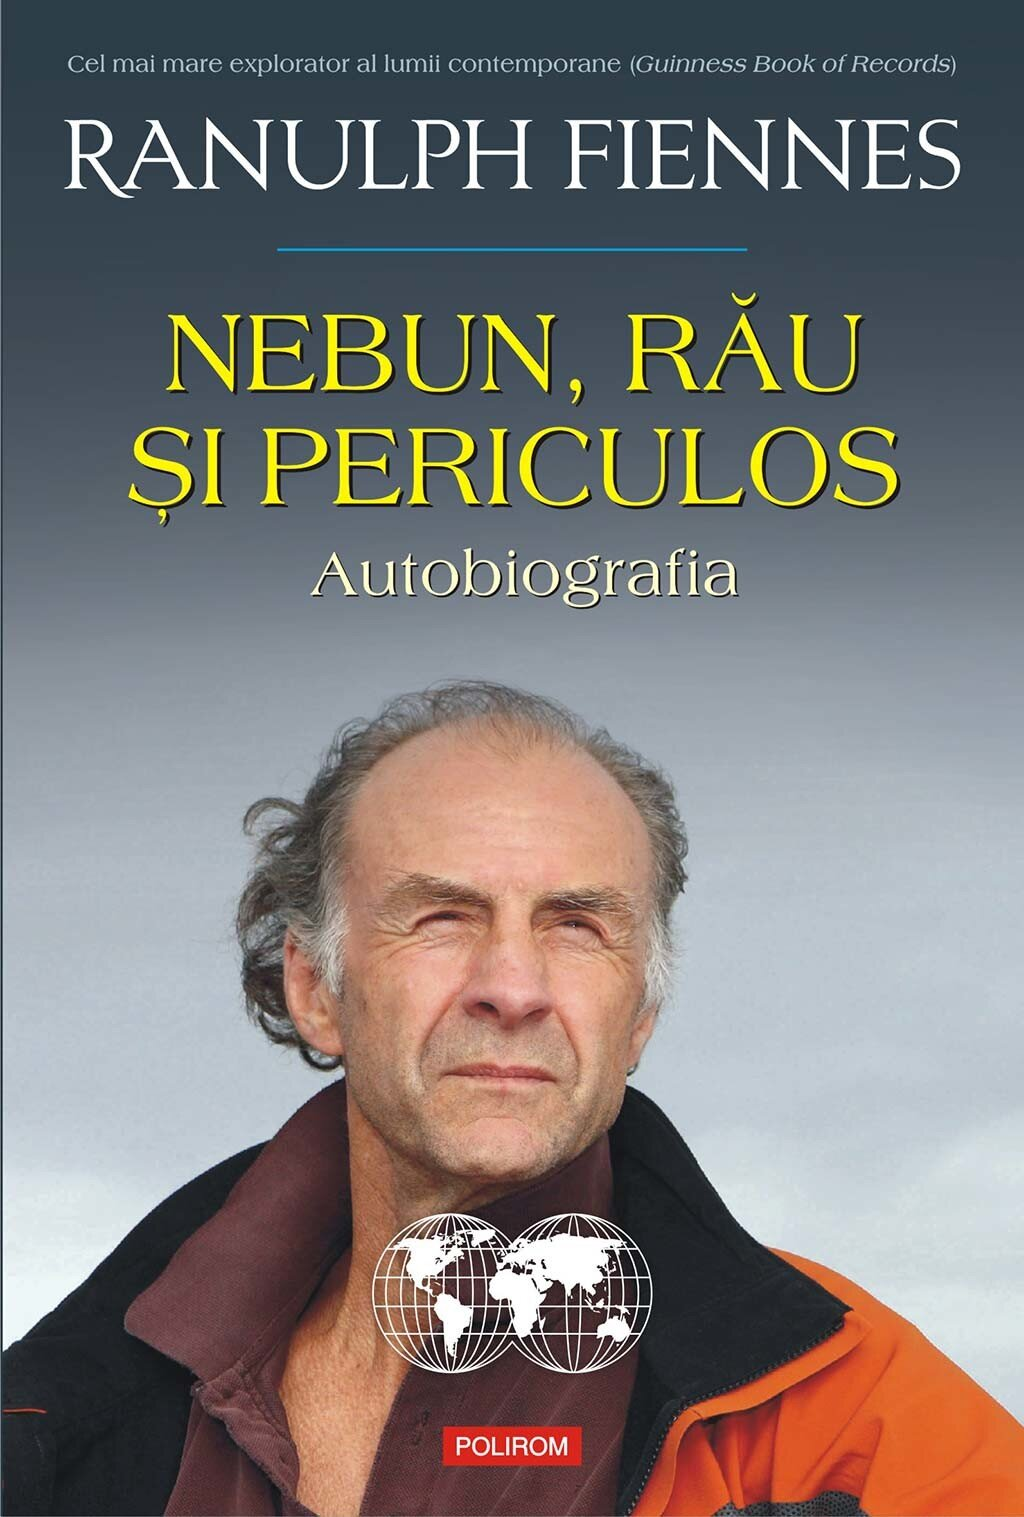 Nebun, rau si periculos. Autobiografia PDF (Download eBook)